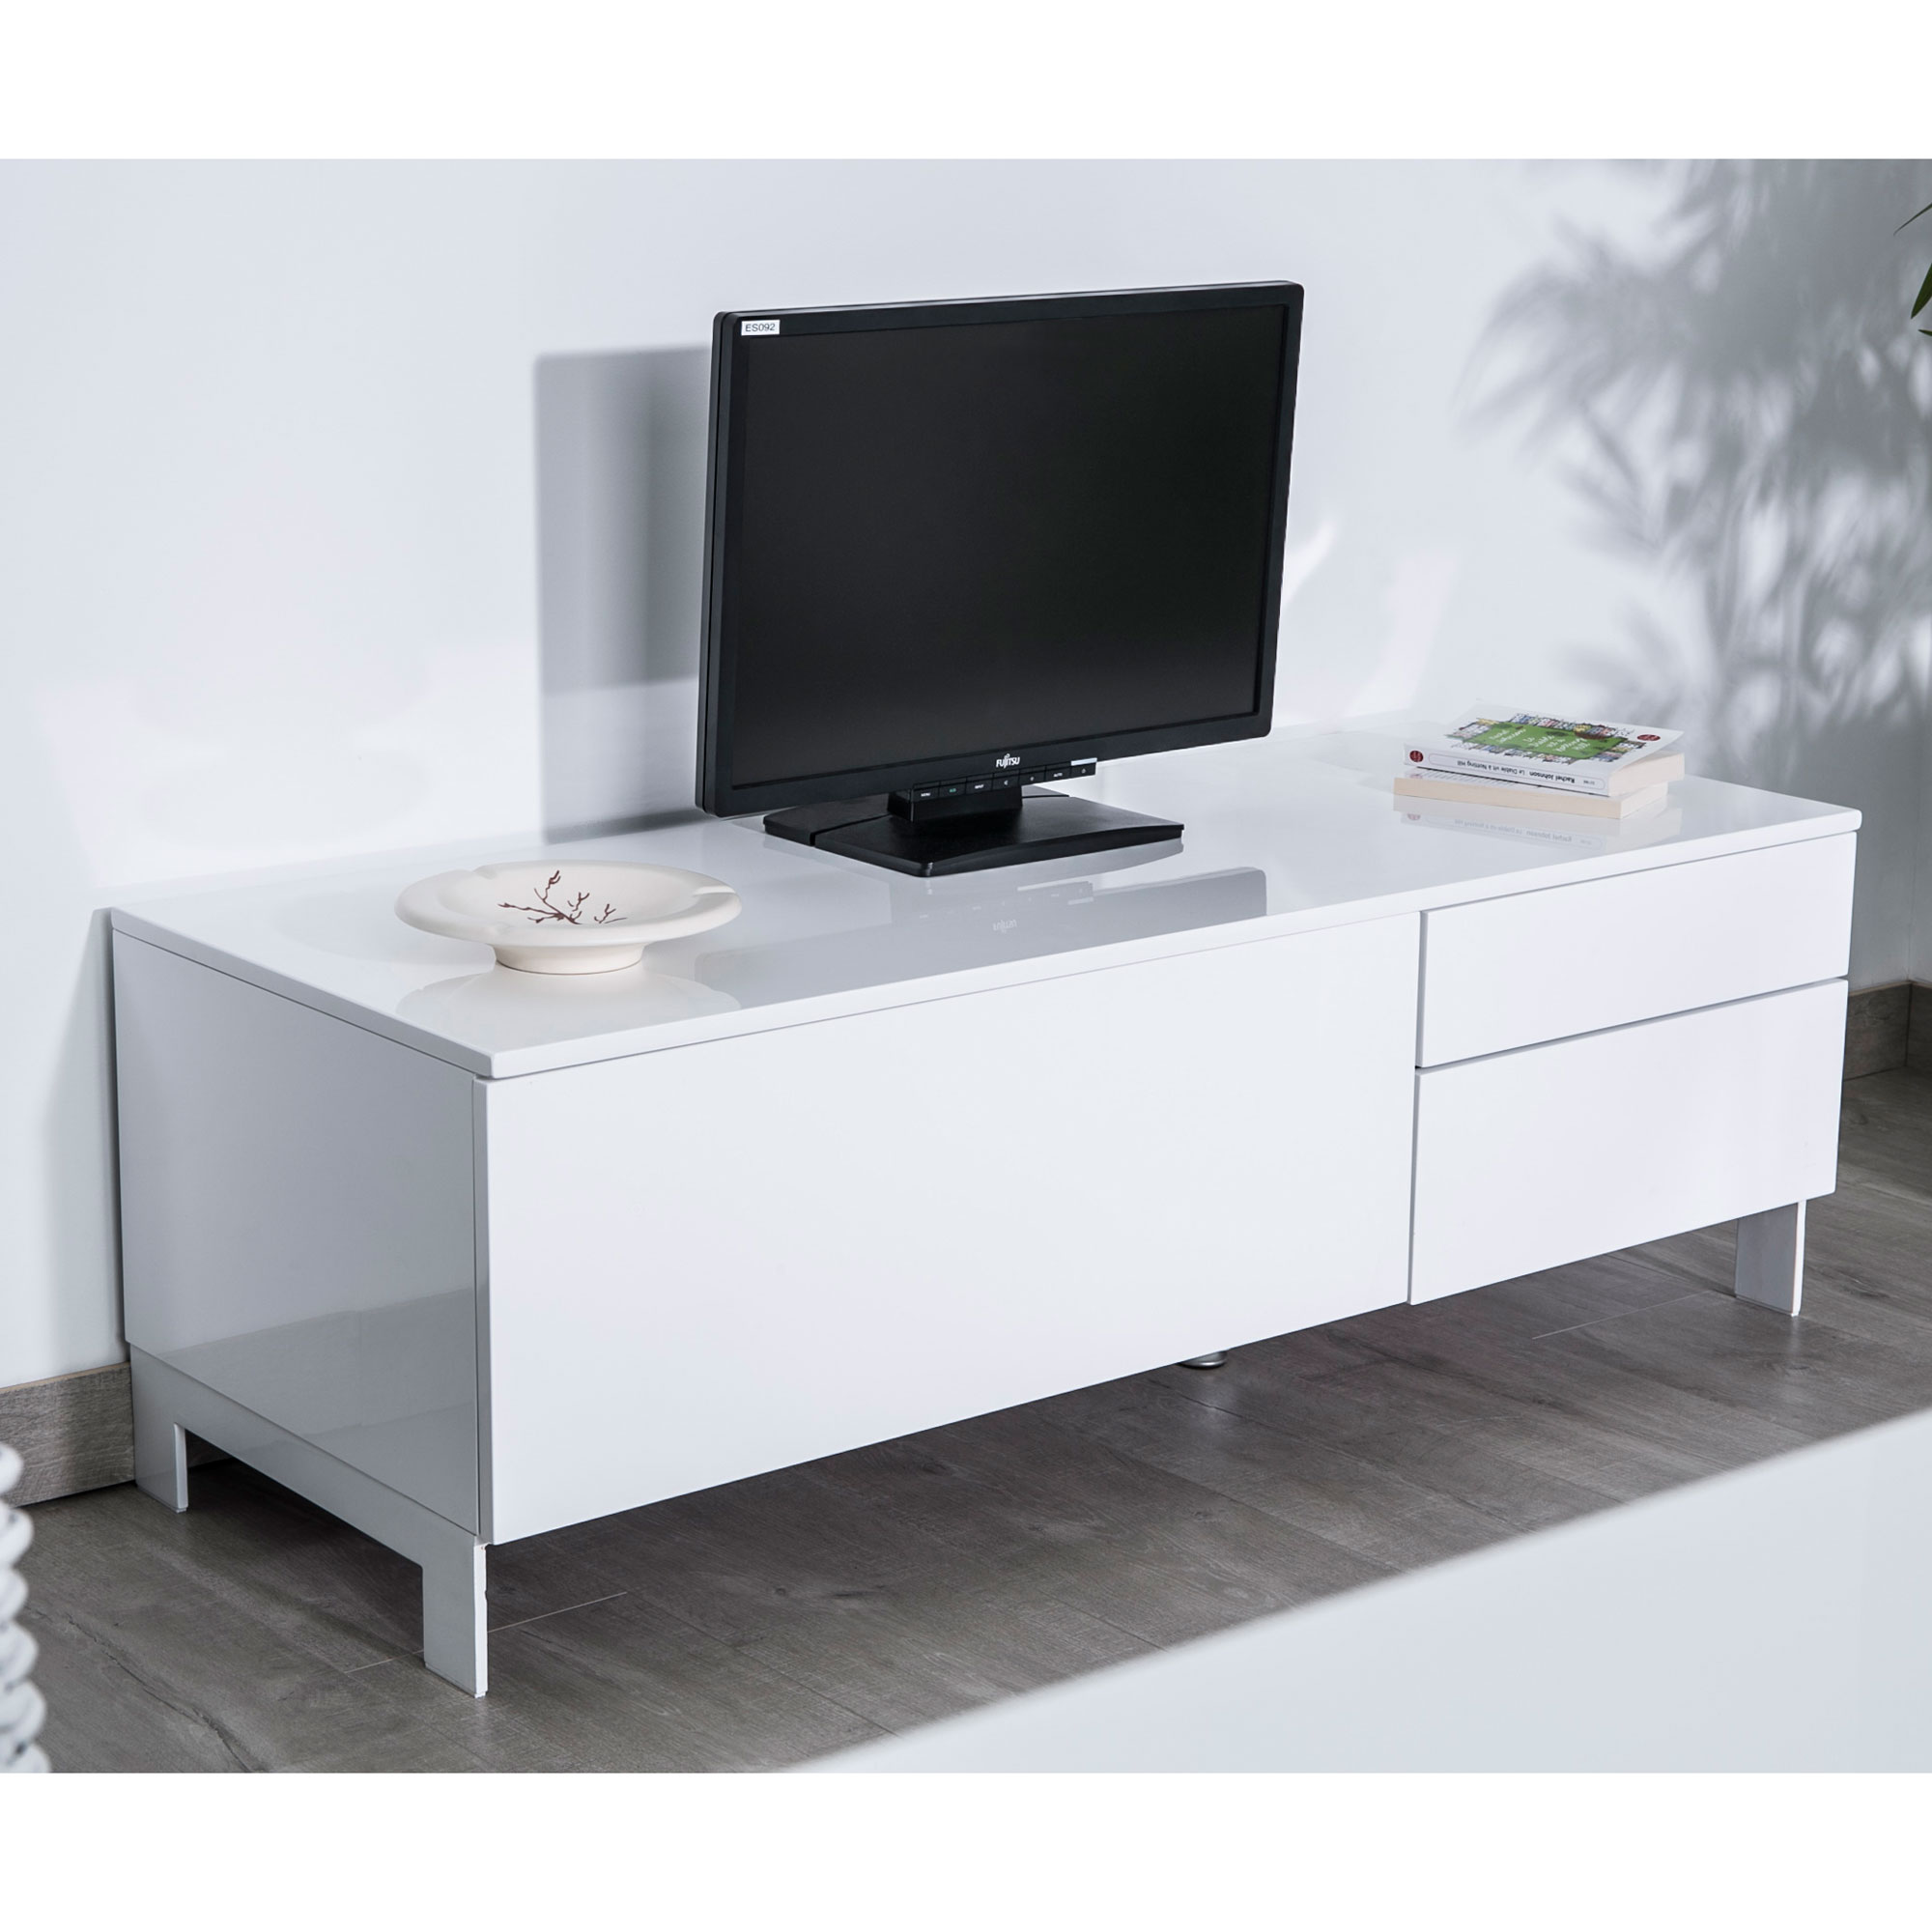 meuble tv gris et blanc id es de d coration int rieure. Black Bedroom Furniture Sets. Home Design Ideas